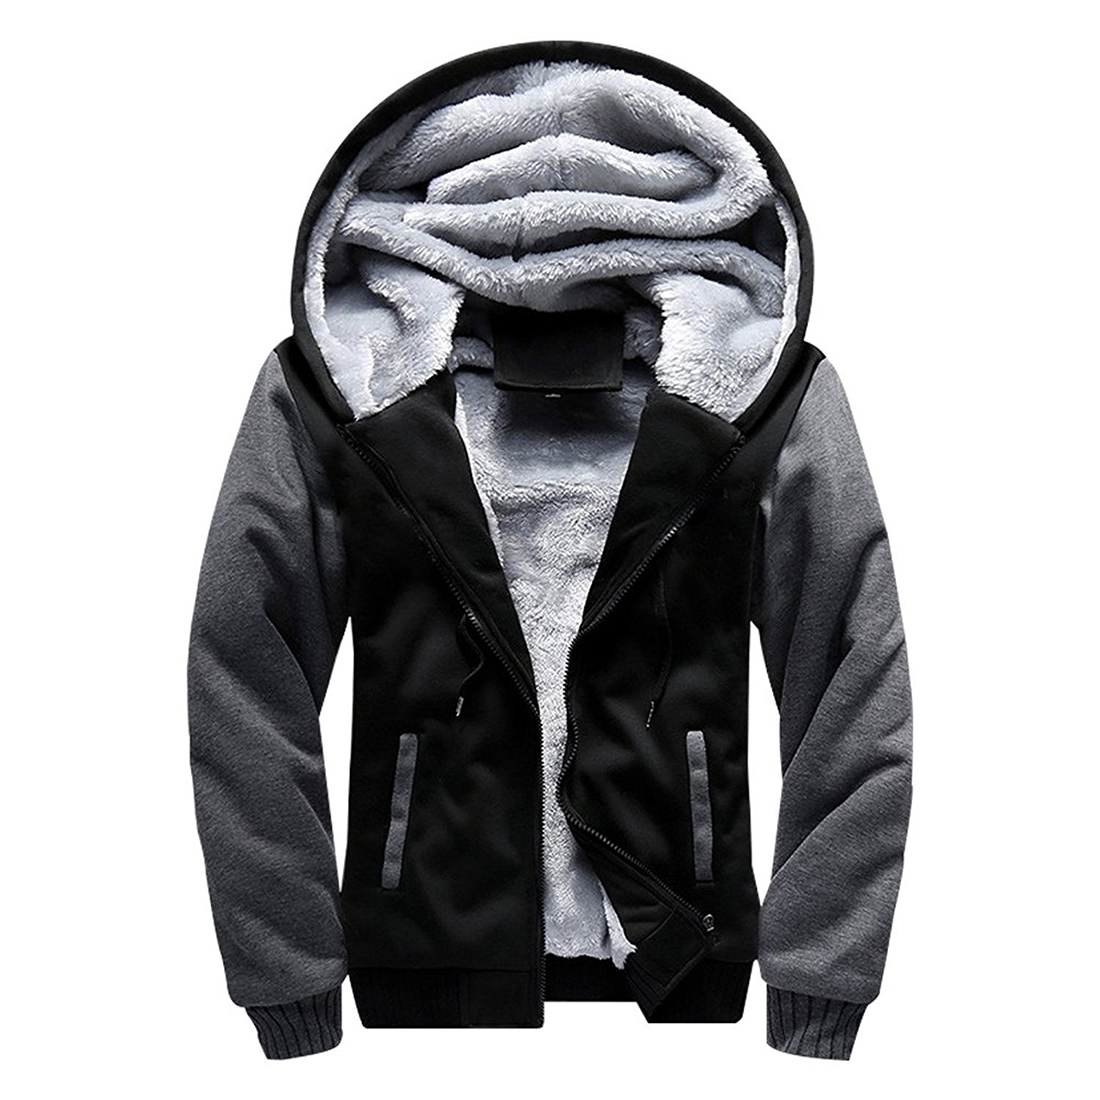 Men Solid Color  Hoodie Zipper Hooded Sweatshirt Winter Coat Thick Fleece Warm Jacket Black Streetwear Plus Size Raglan Hoodies